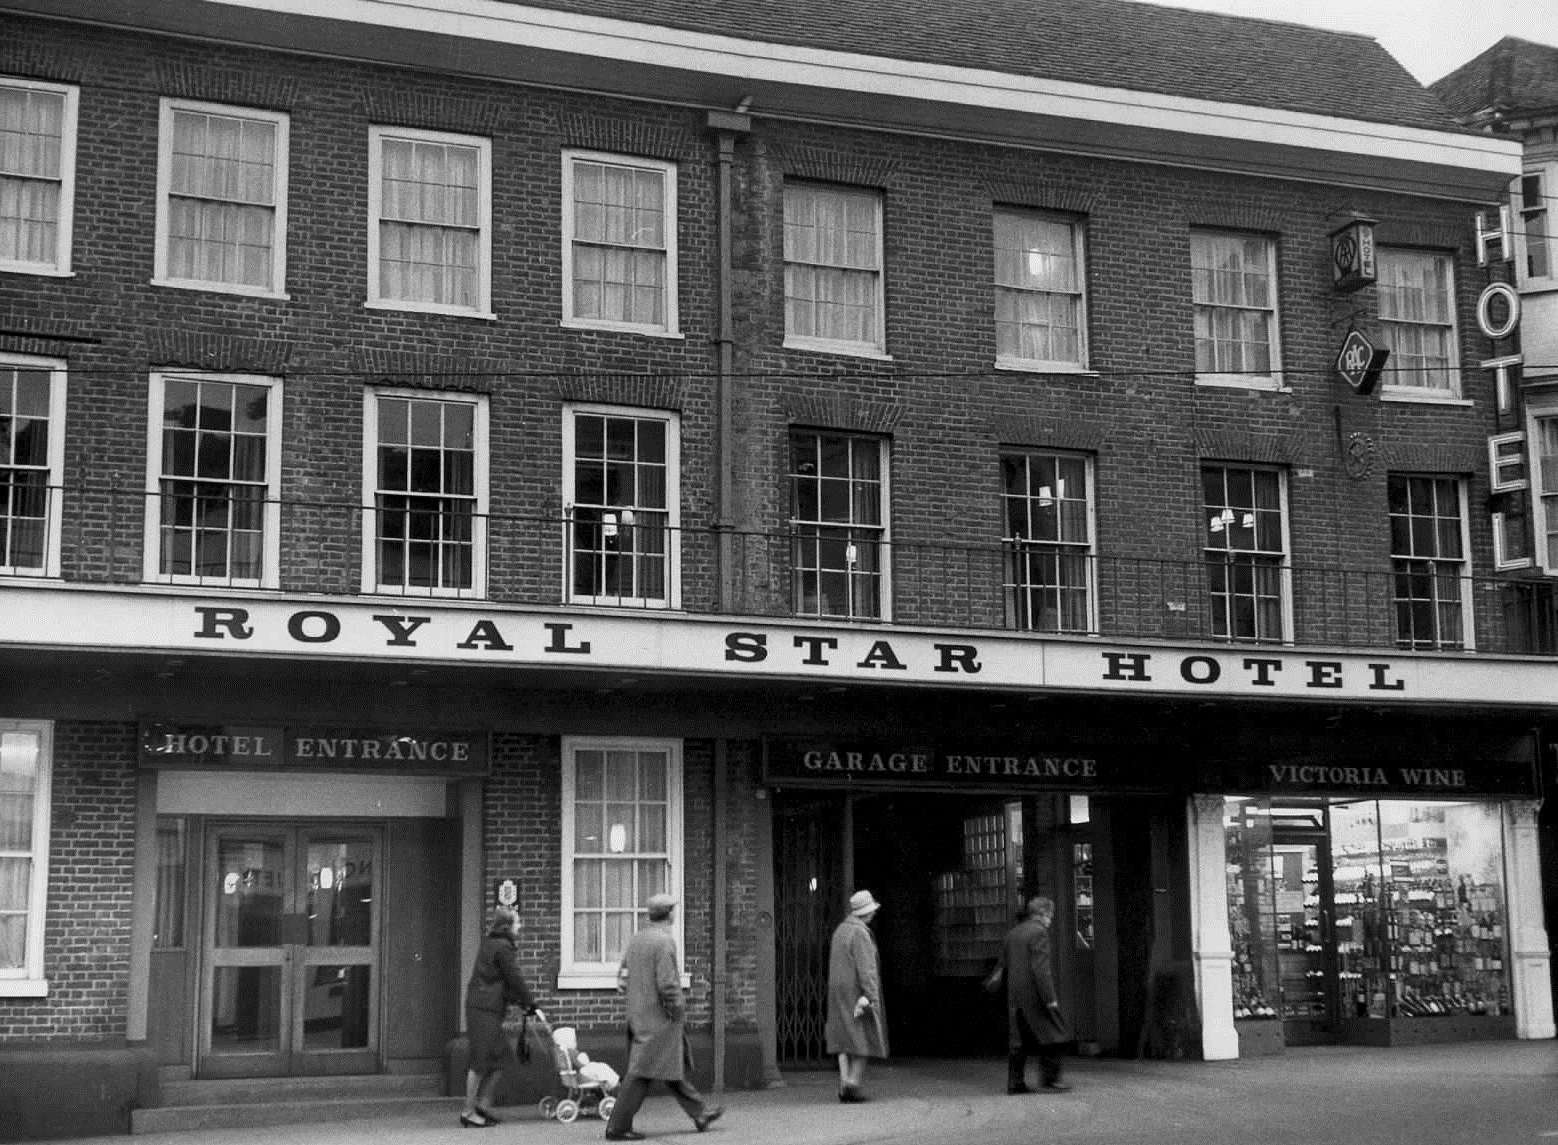 The Royal Star Hotel